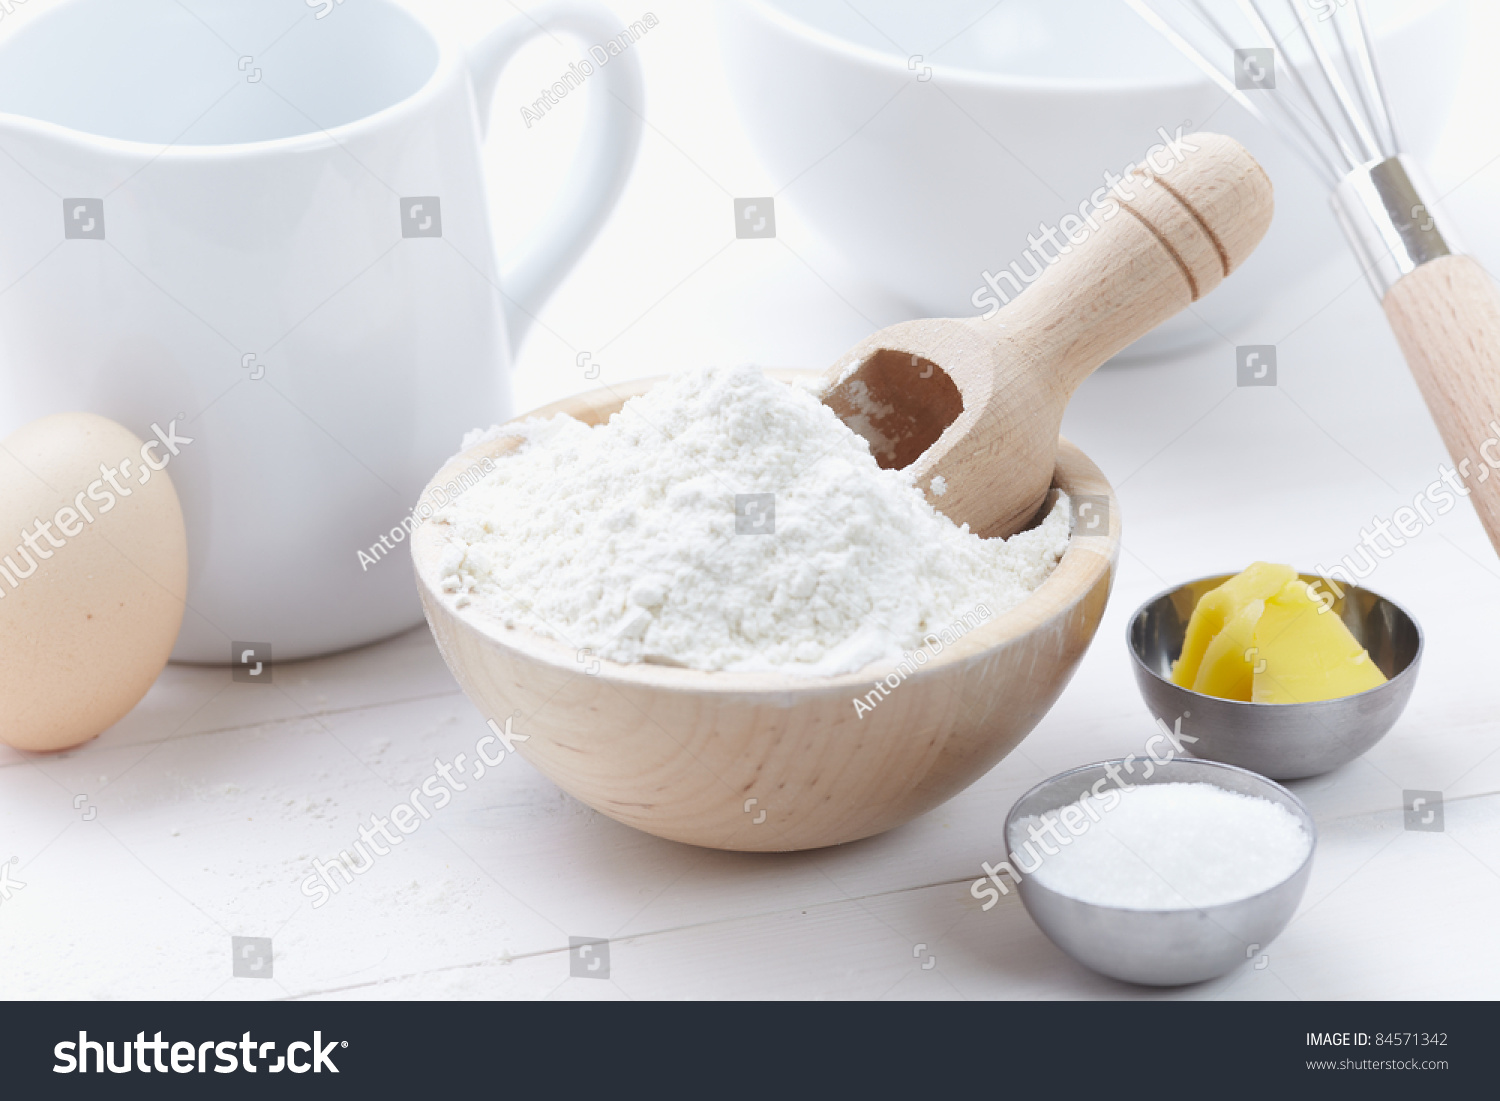 Ingredients tools make cake flour butter stock photo for What are the ingredients for making cake